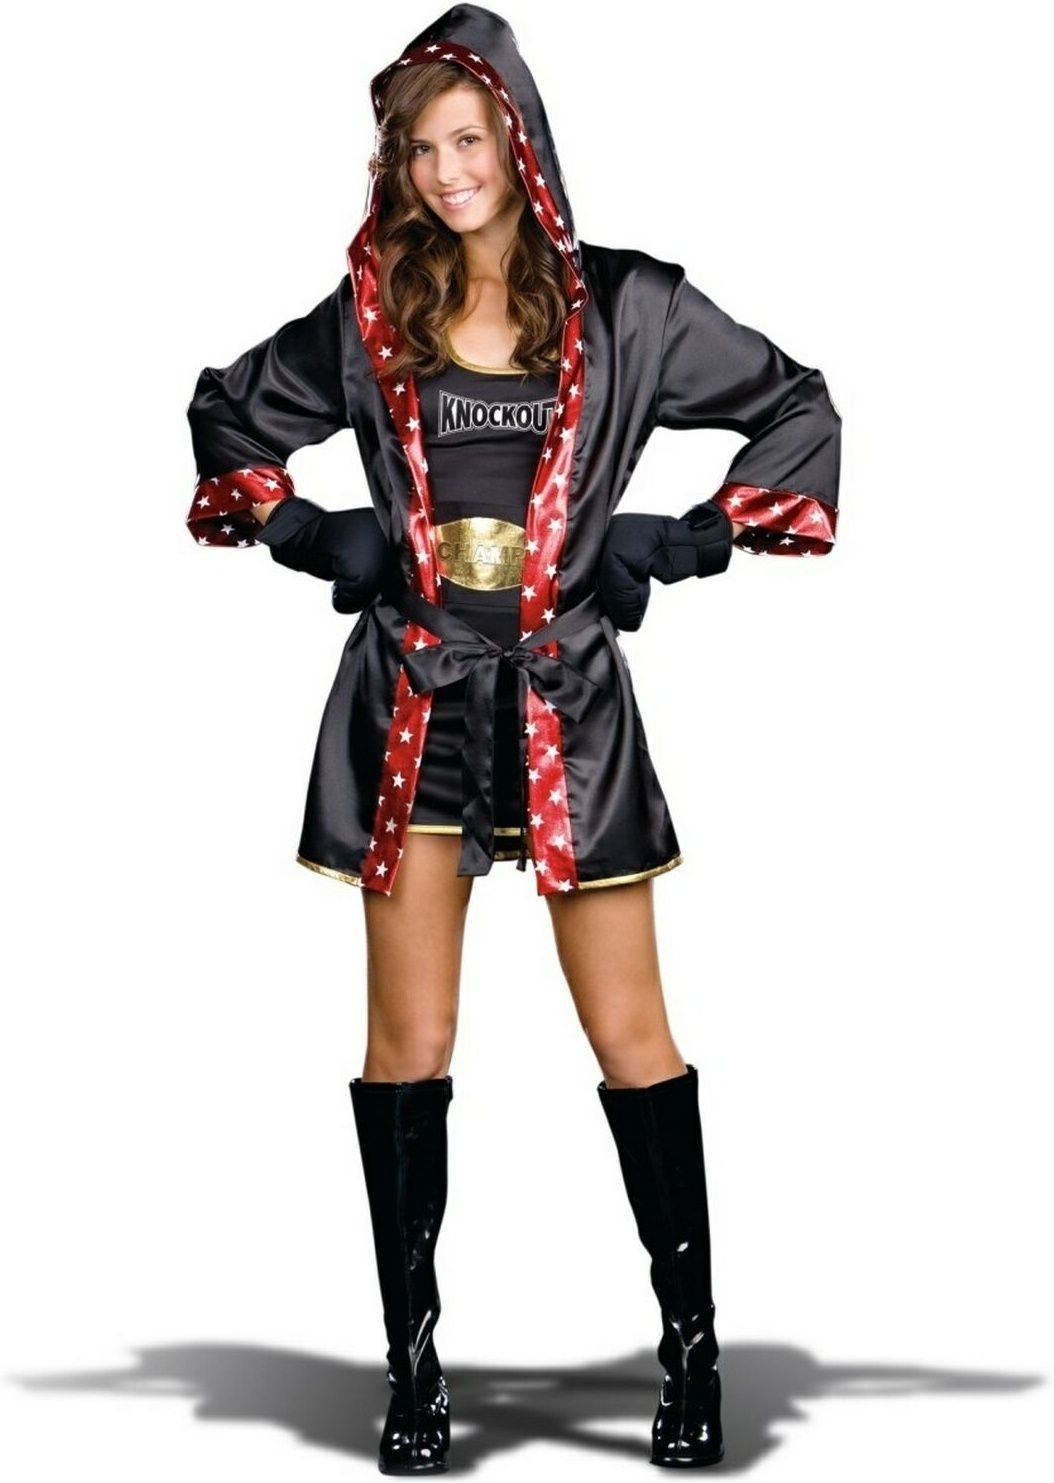 10 Perfect Cute Teen Halloween Costume Ideas cutehalloweencostumesforteens tko costume teen costume 2021